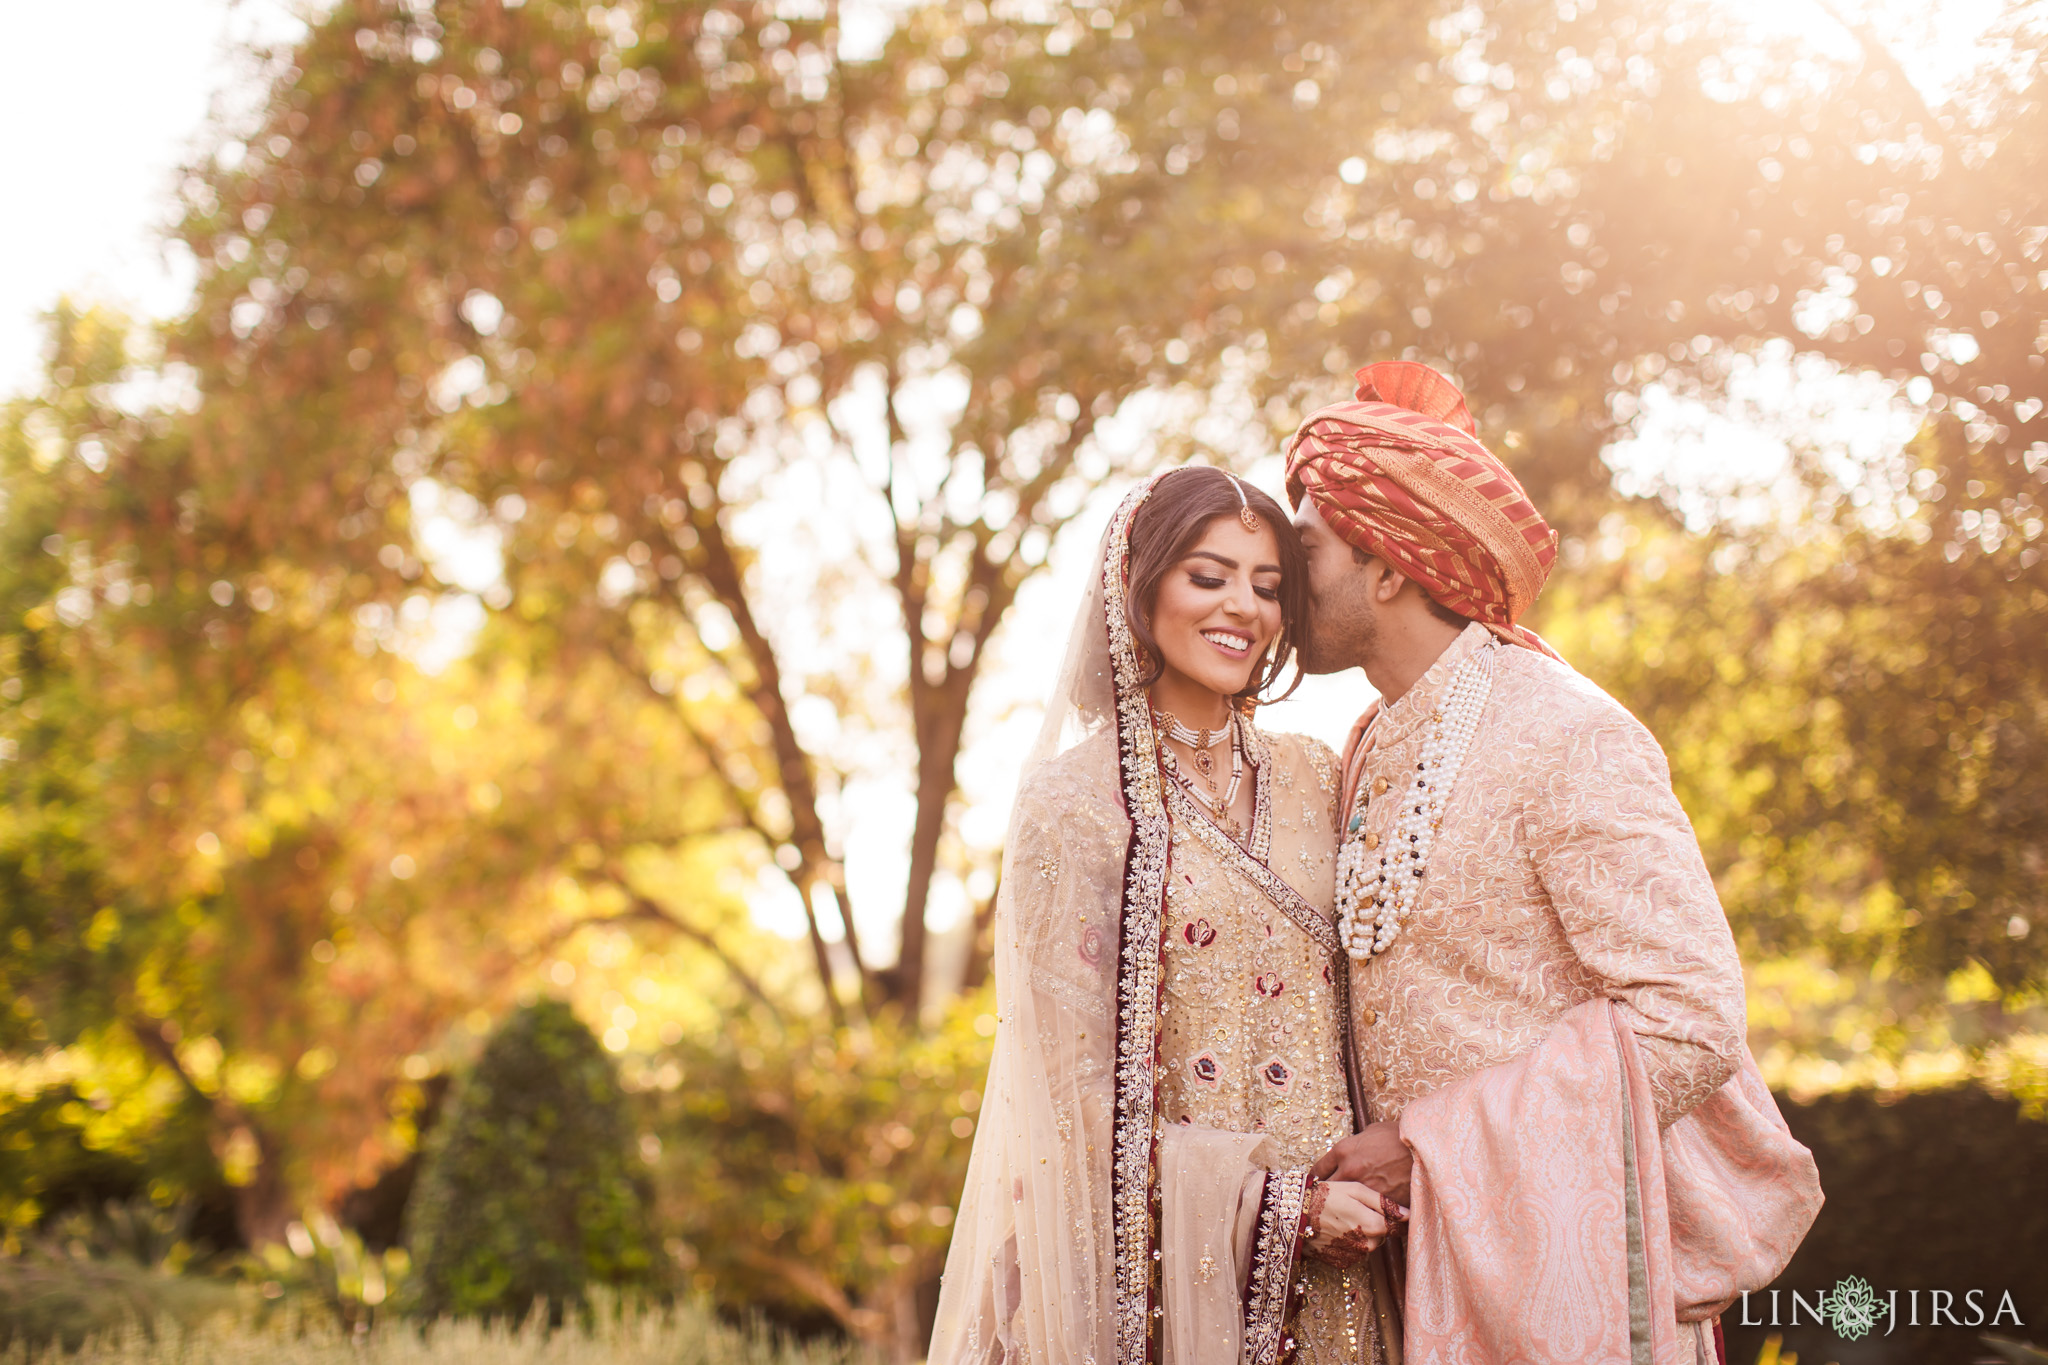 014 four seasons westlake village muslim wedding photography